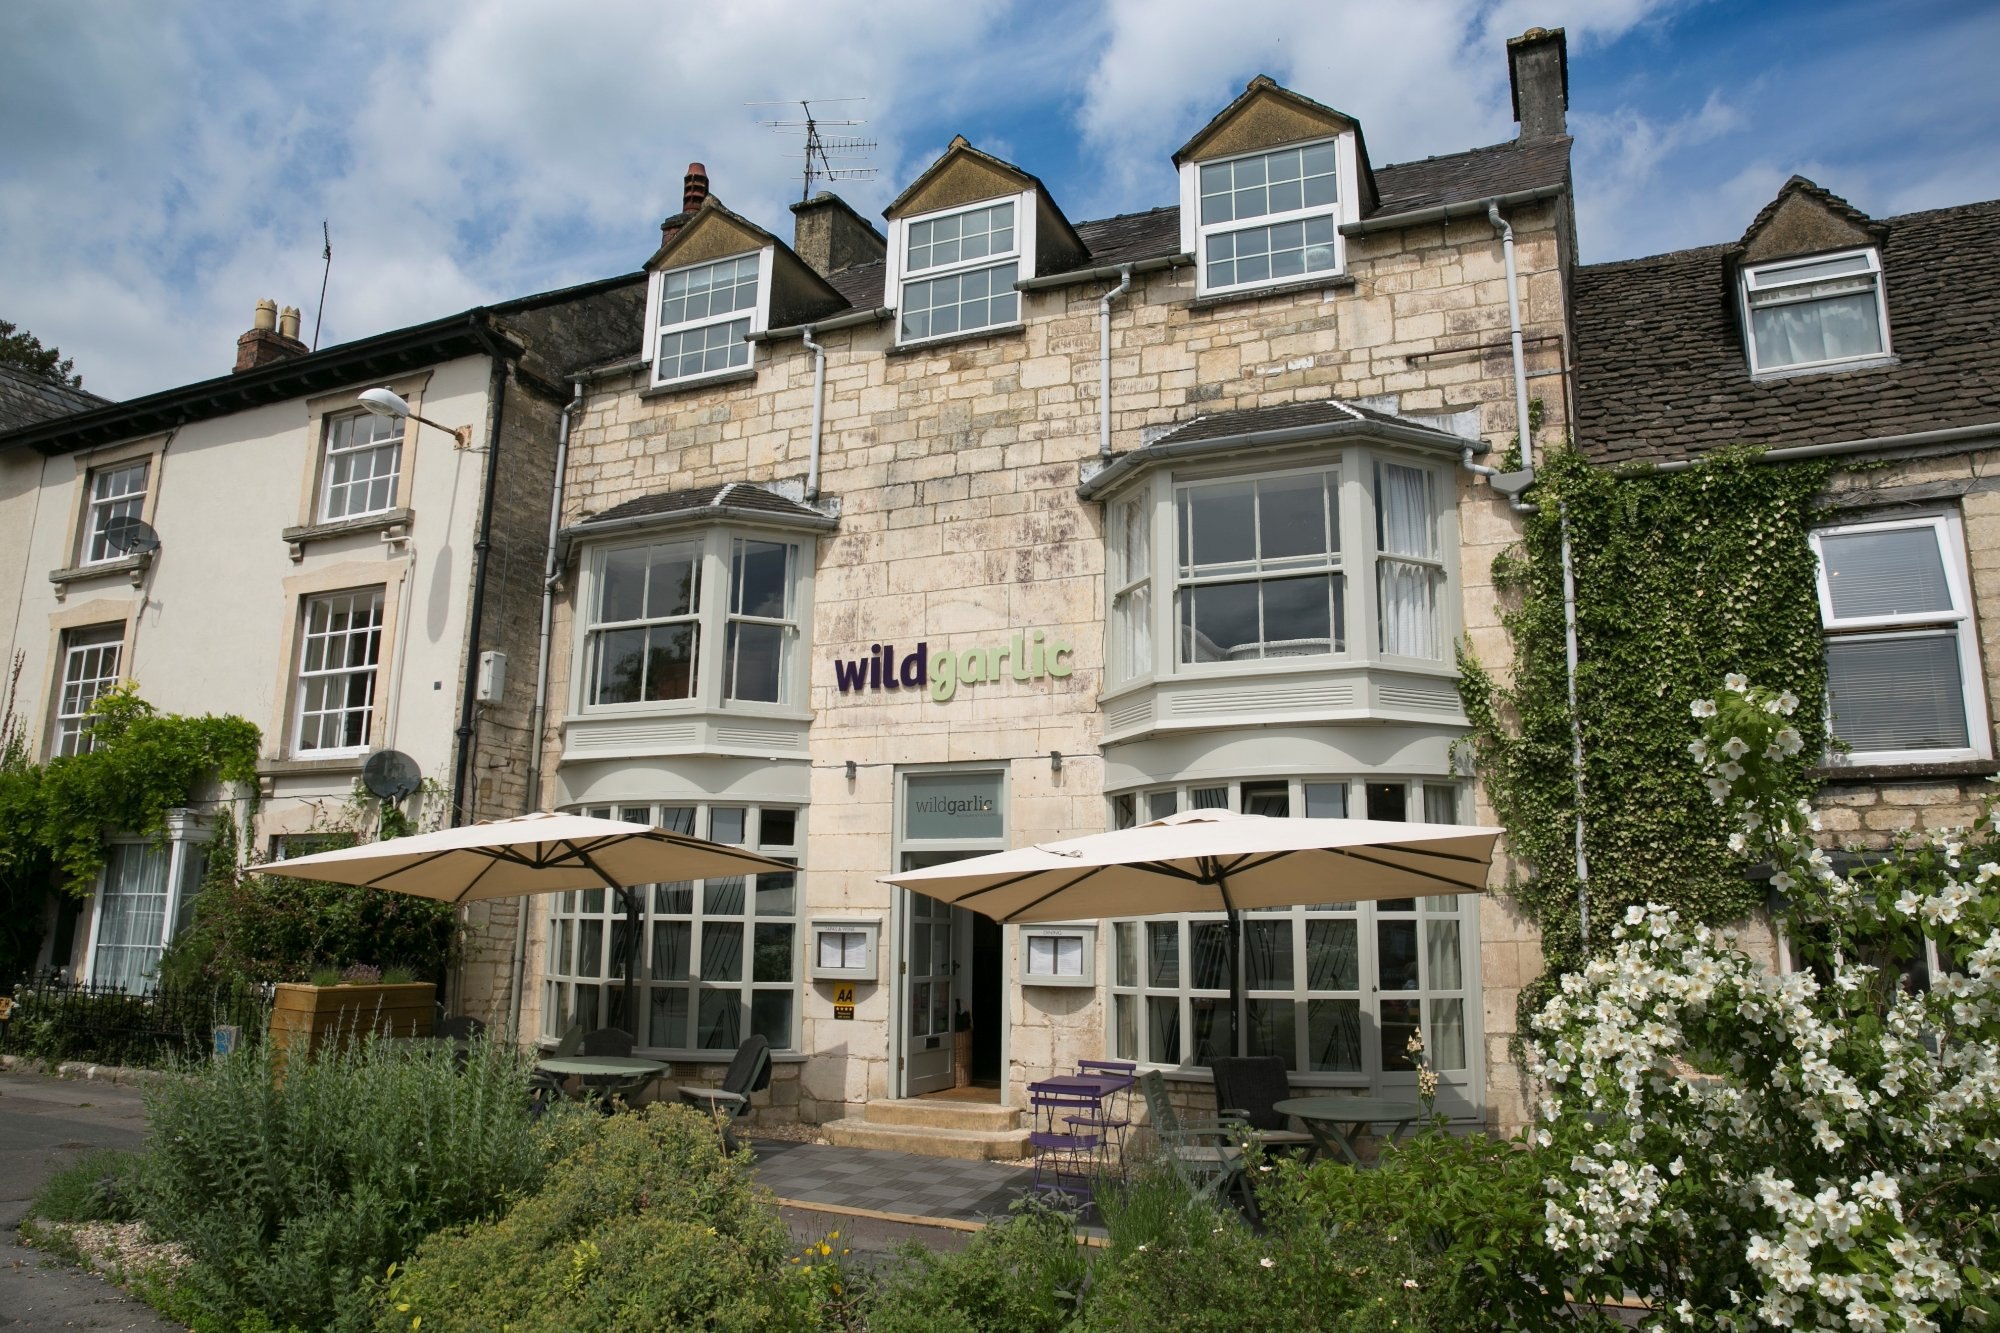 Wild garlic bistro rooms nailsworth restaurant for Terrace 45 menu